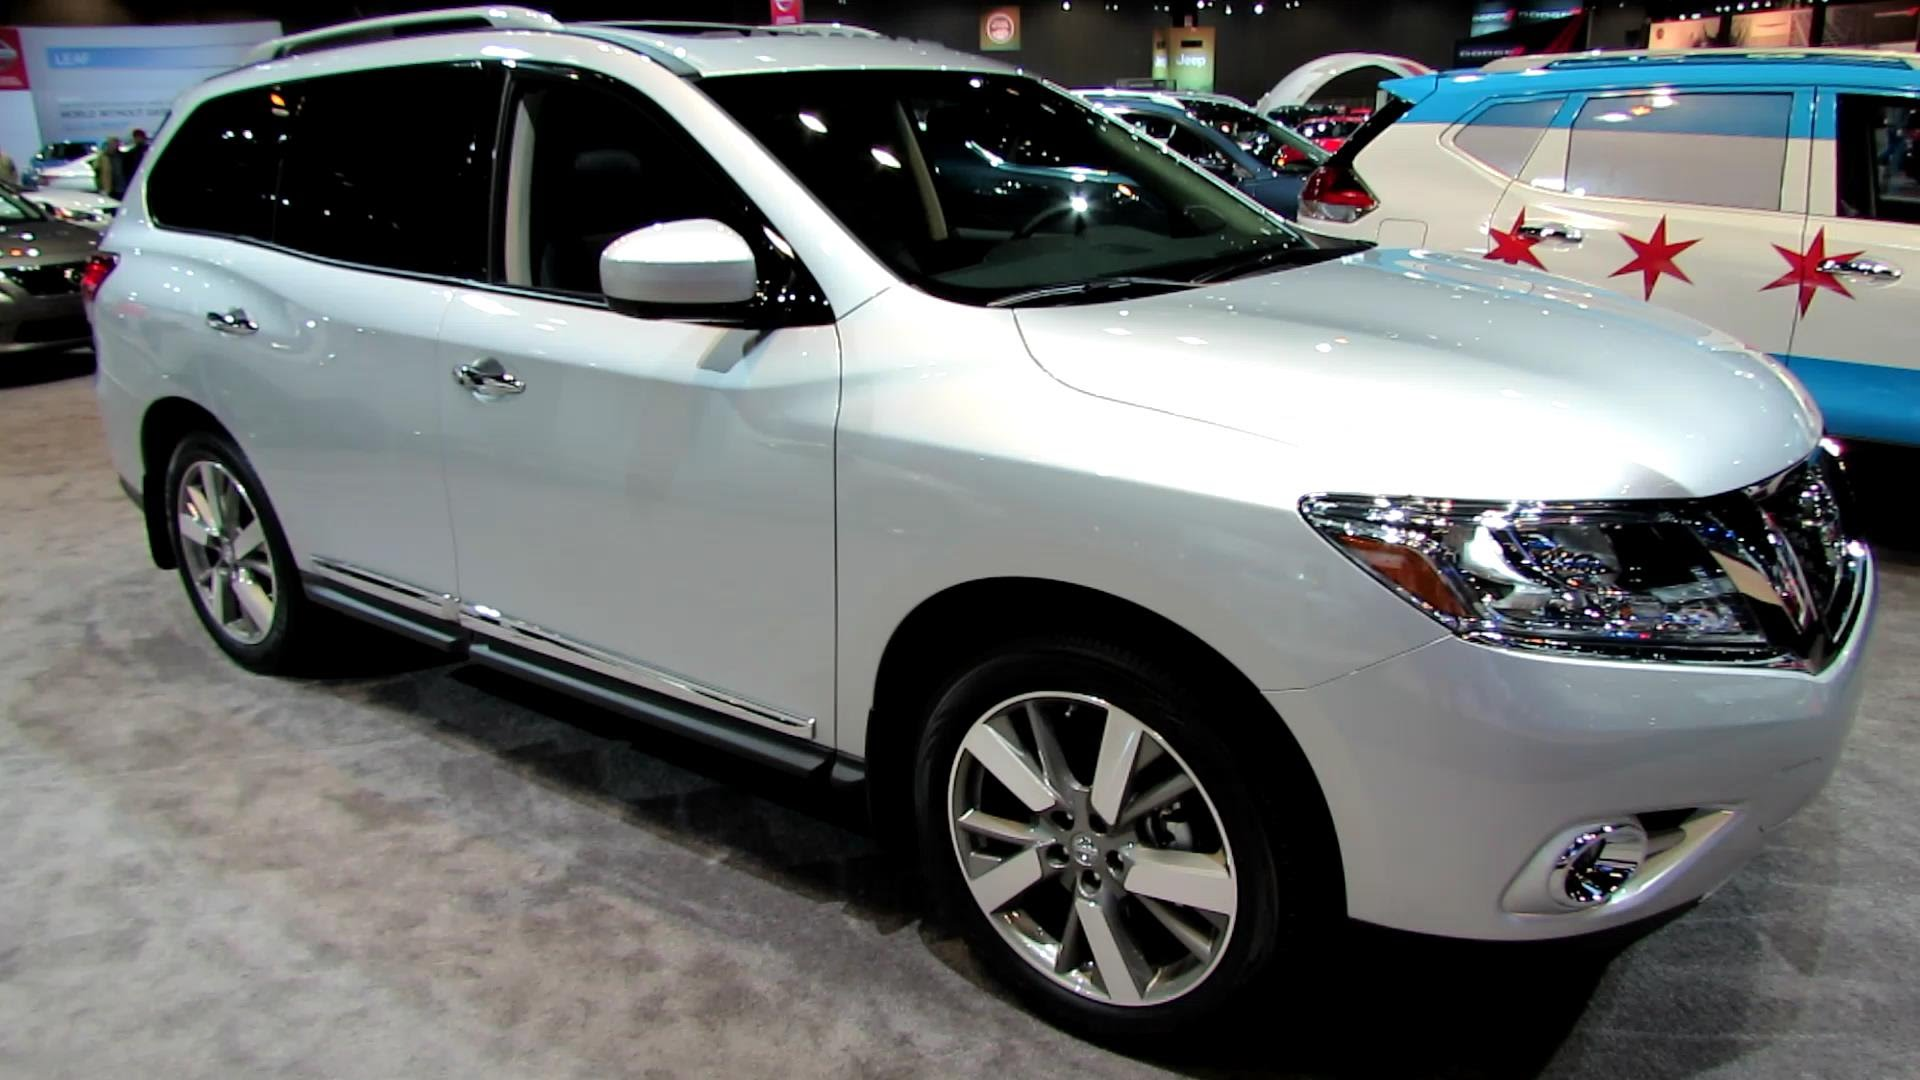 2014 Nissan Pathfinder Platinum 4WD - Exterior and Interior Walkaround - 2014 Chicago Auto Show